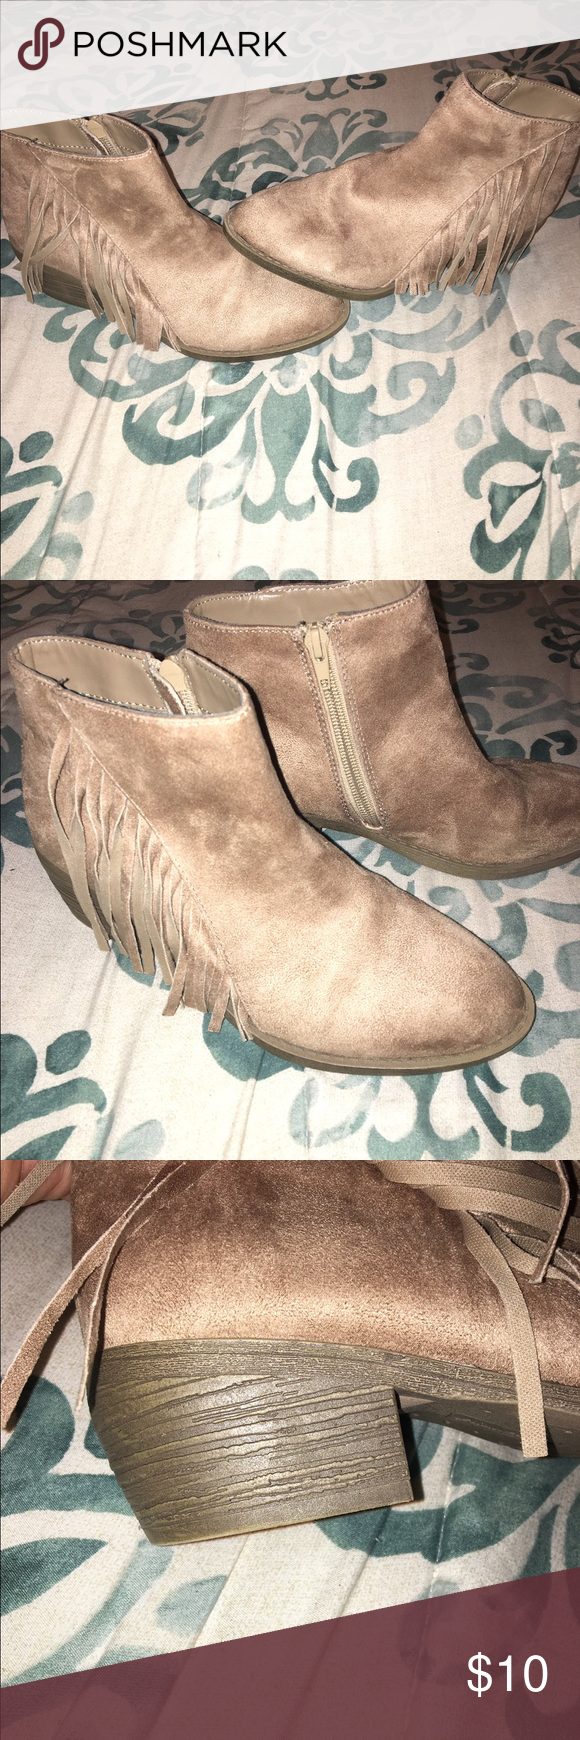 Super cute boots Theses tan boots are in excellent condition, like brand new, size 7 great for the fall. American Eagle by Payless Shoes Ankle Boots & Booties